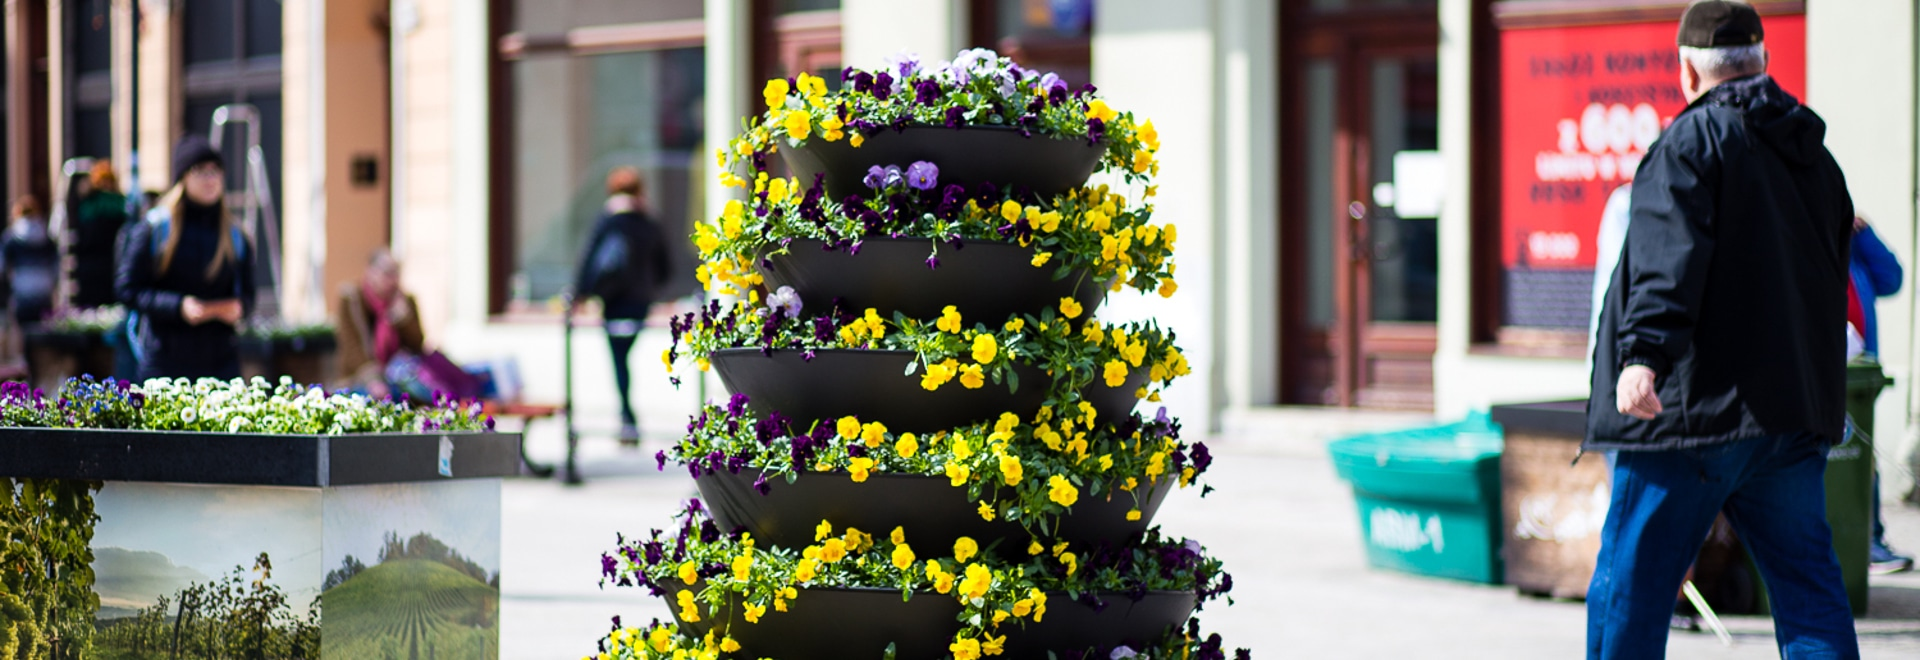 Spring Planting in the Flower Containers